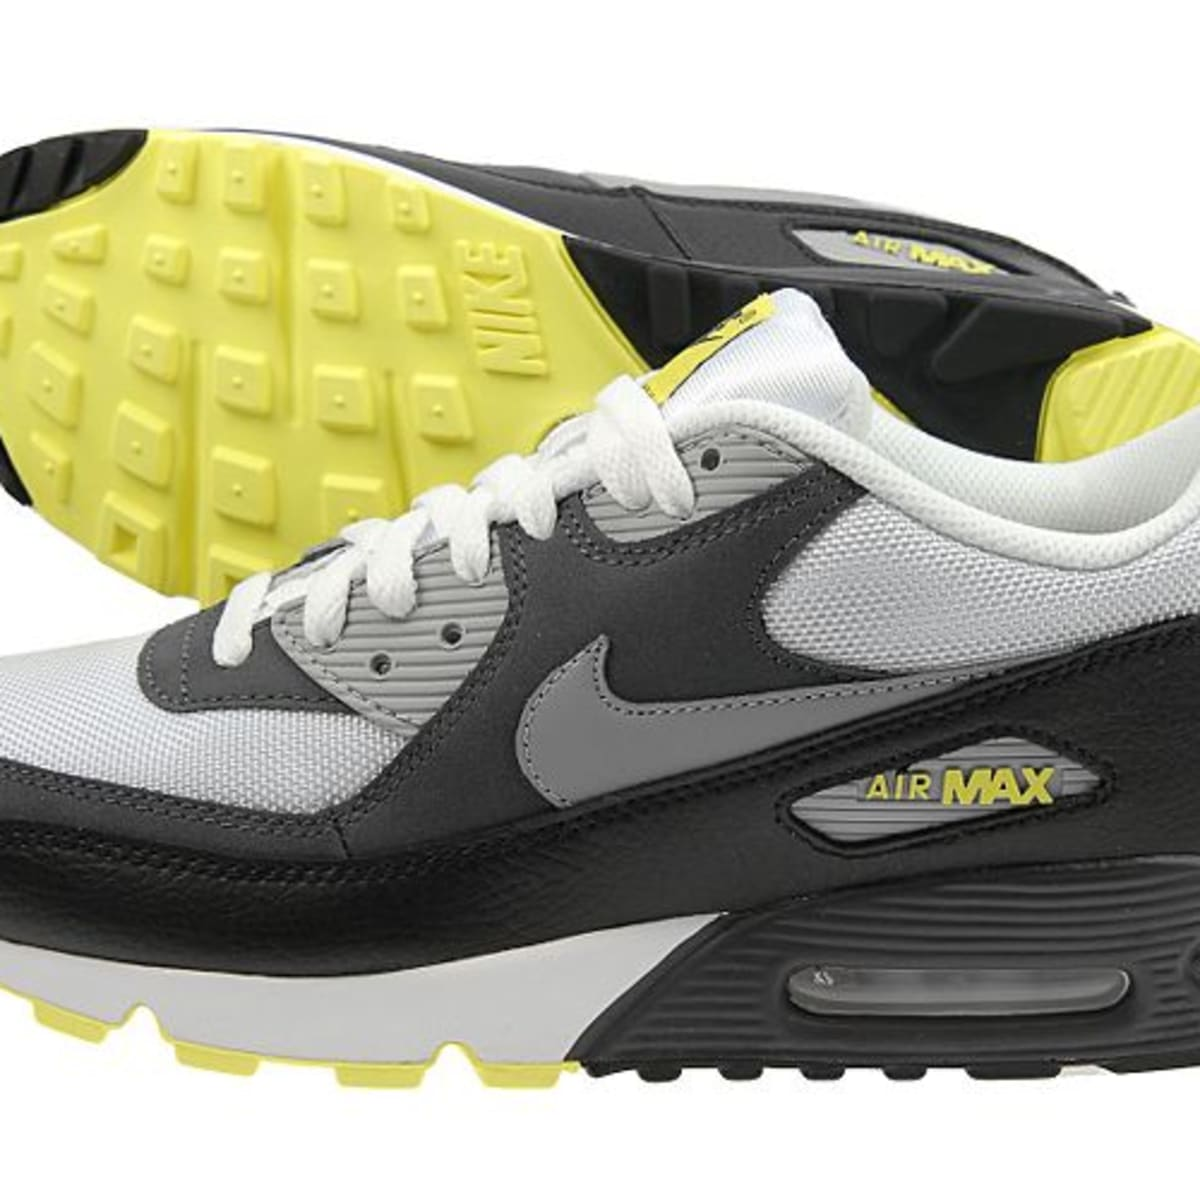 juguete pavimento Individualidad  Nike Air Max 90 - White/Grey/Yellow | JD Sports Exclusive - Freshness Mag